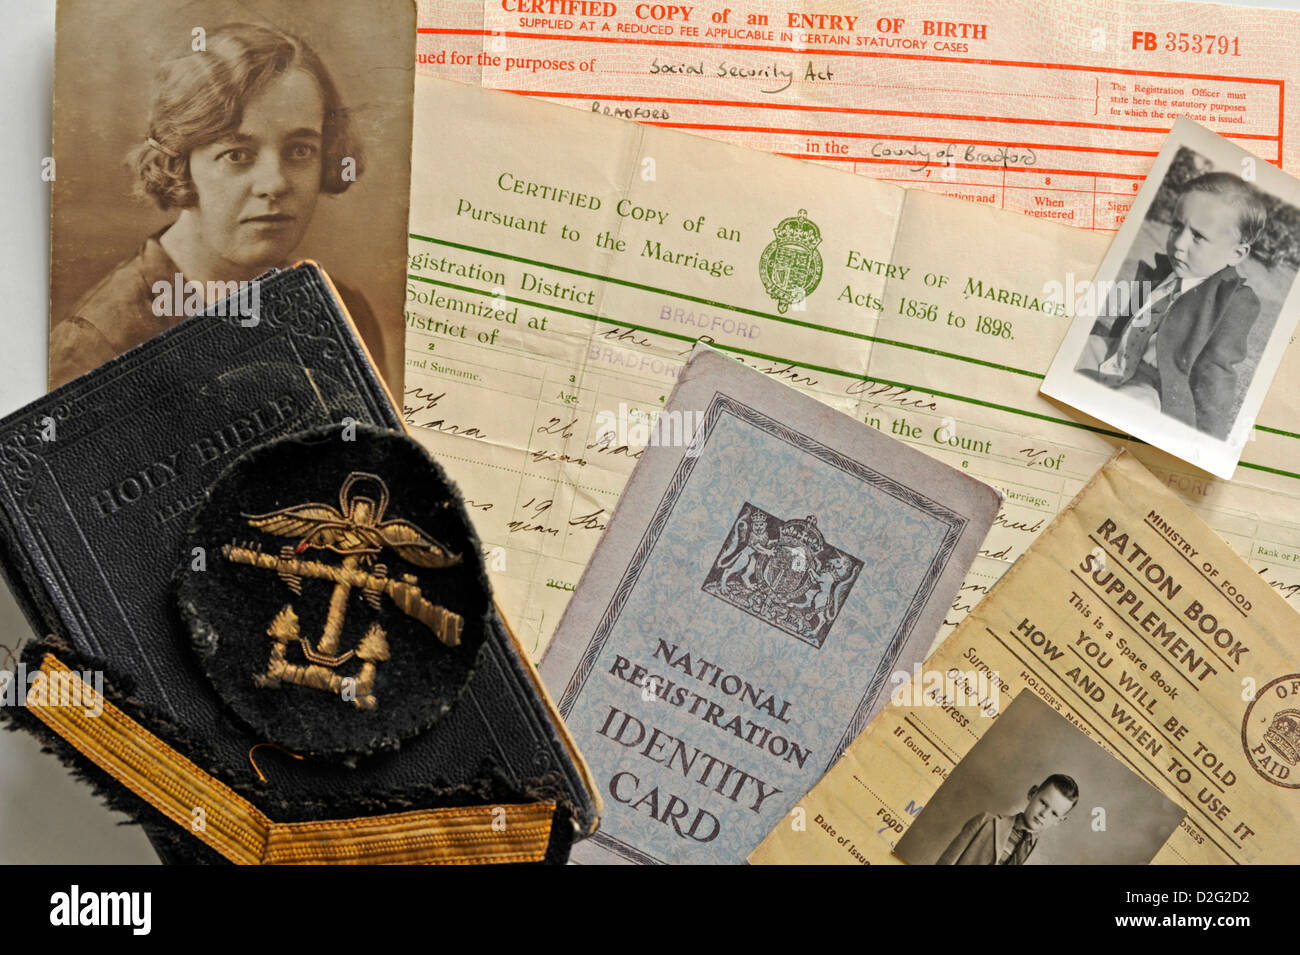 Concept shot of family history related items - Stock Image